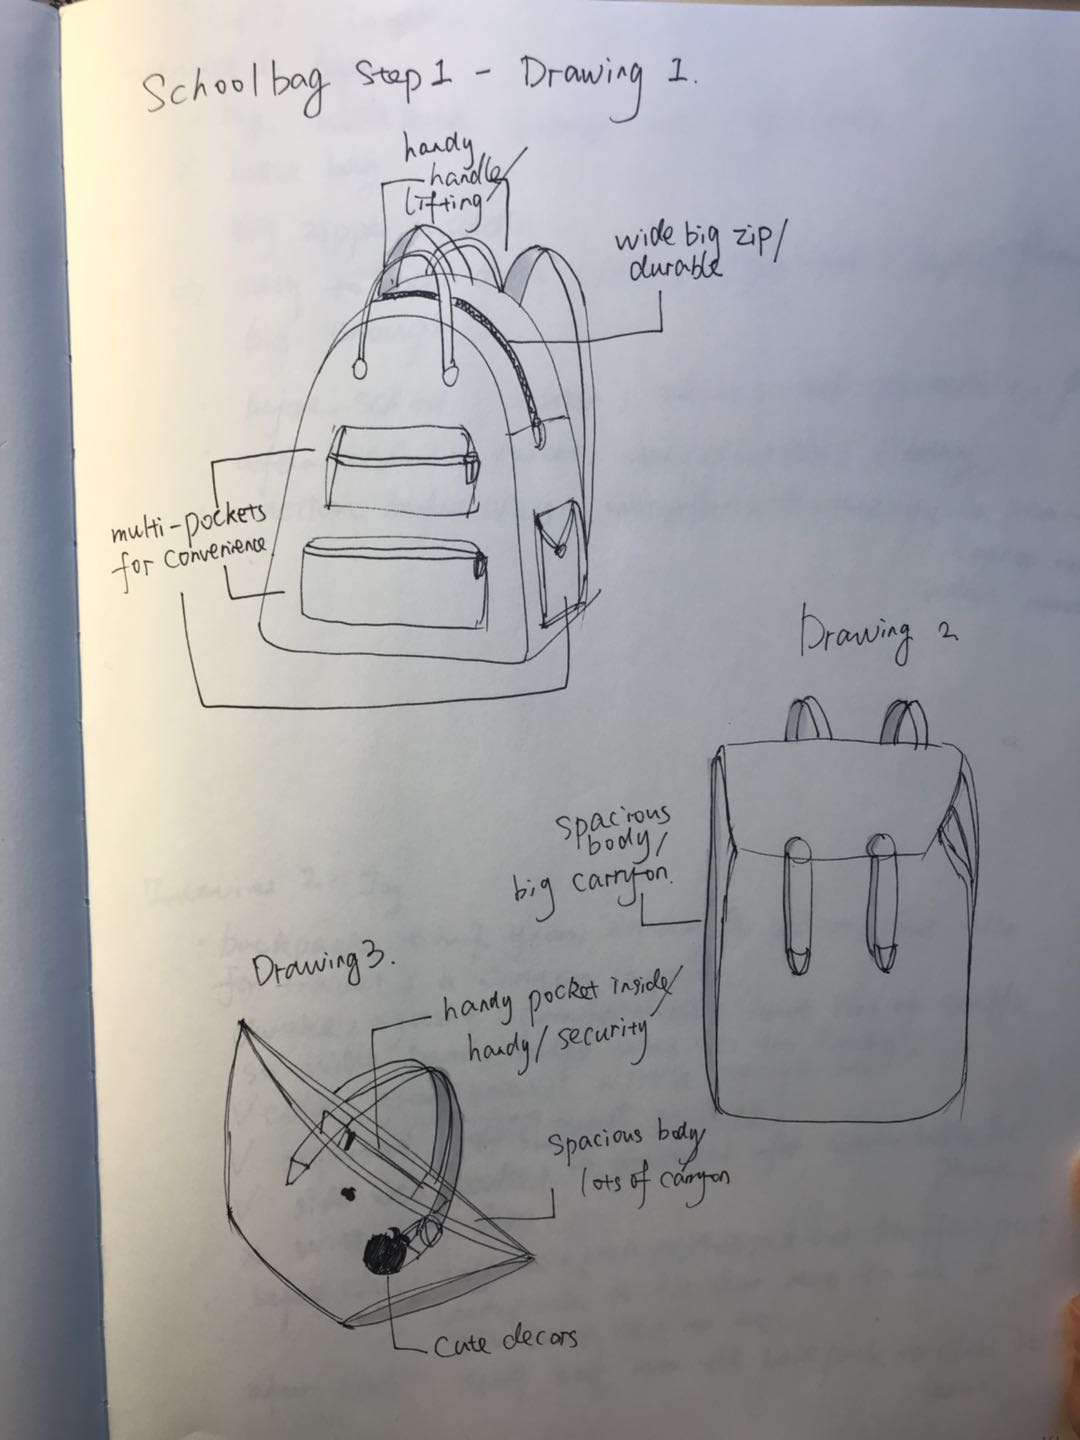 Step 1: ideation - I sketched possible solutions of a desired schoolbag that satisfying all the needs of a college student.